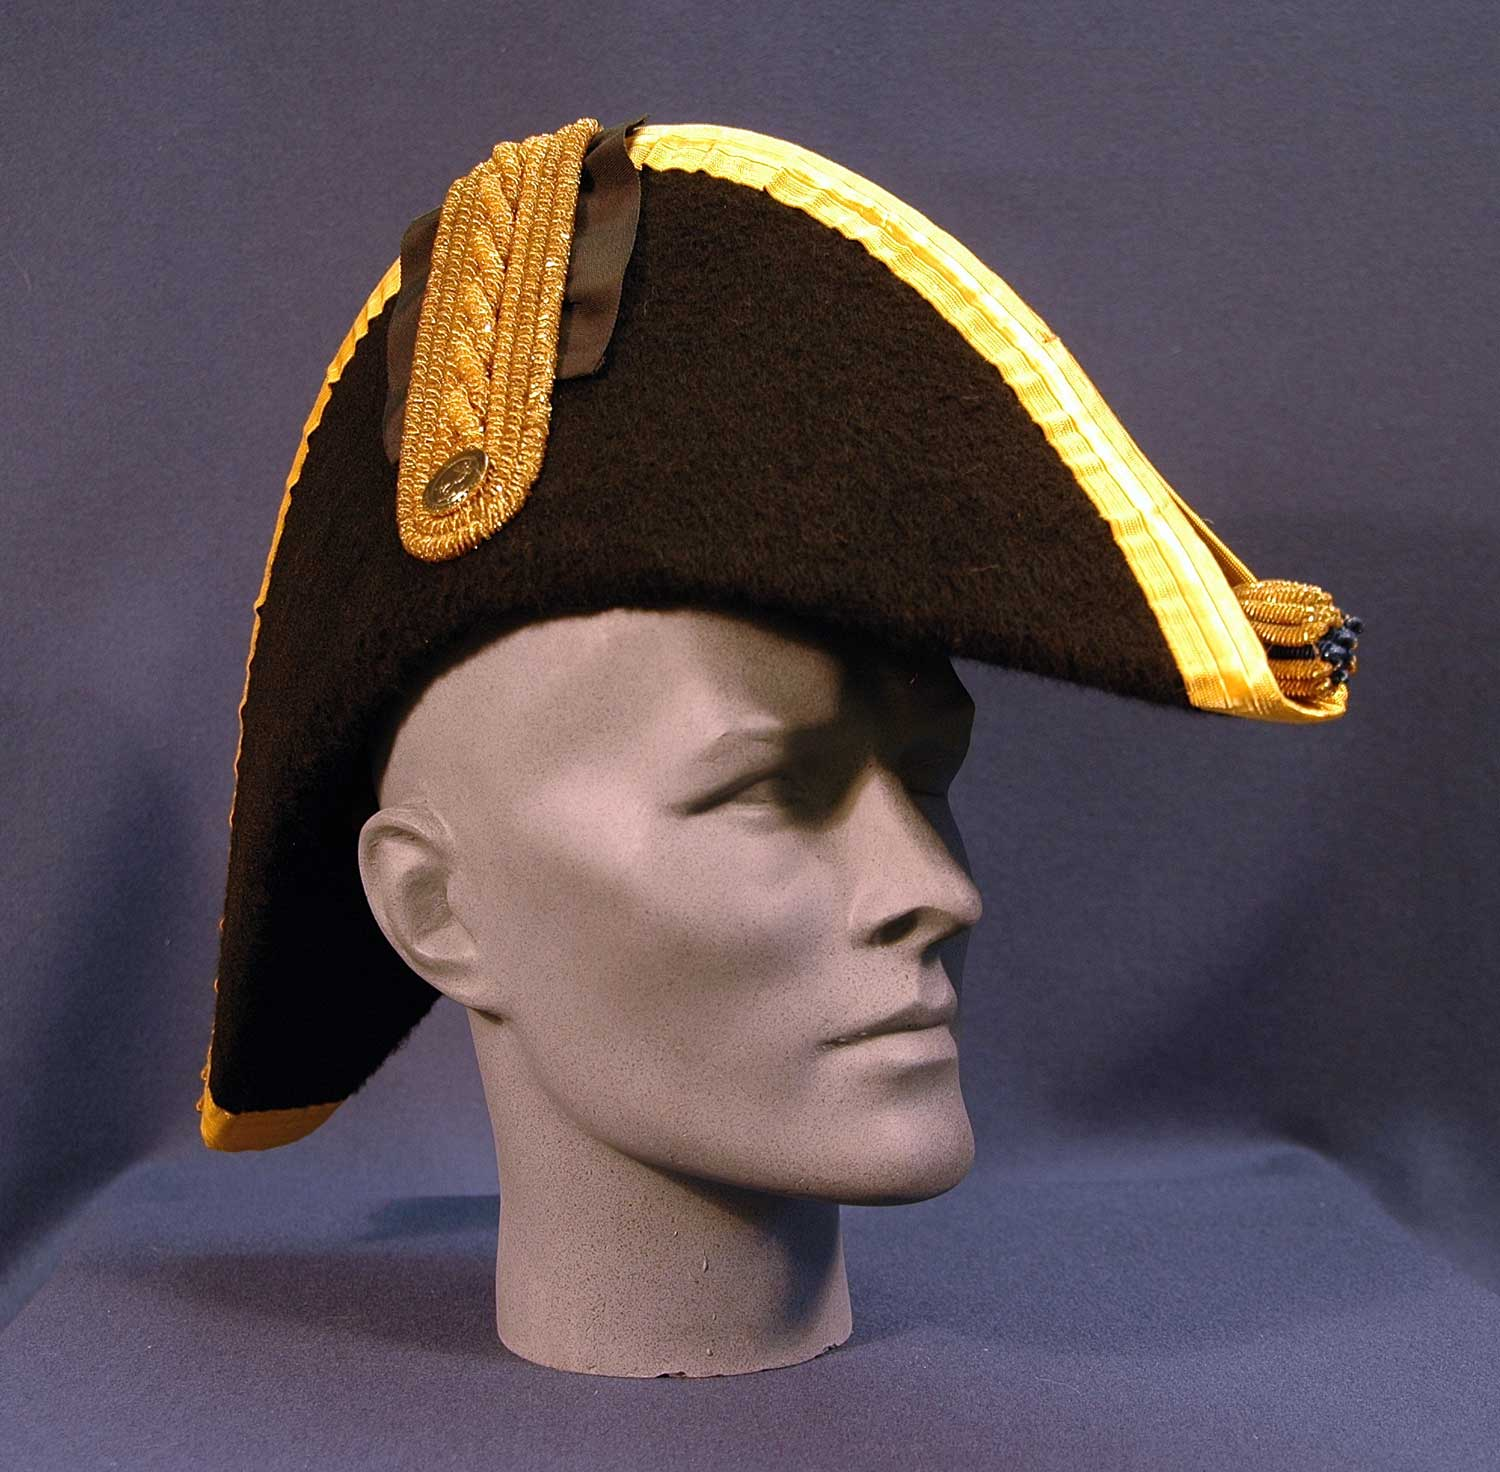 British, Vice-Admiral Cocked Hat